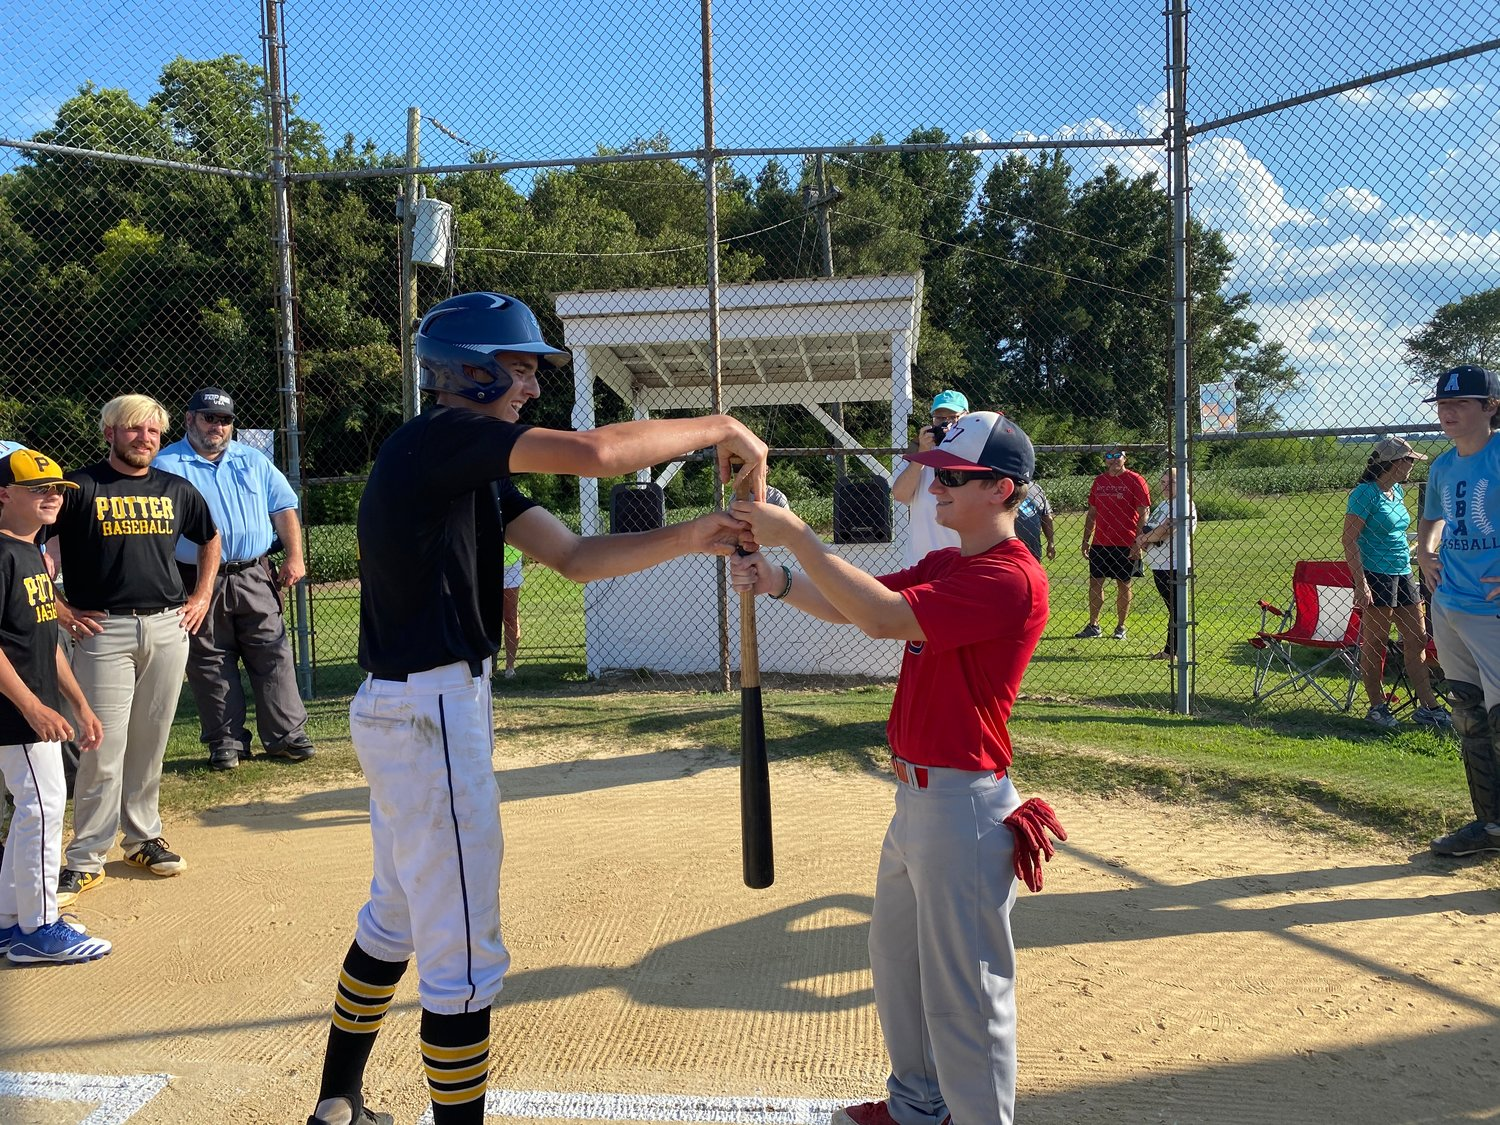 Potter's Baseball Tour player Bryan Shirkey, left, and Mount Olive Green Machine's Wyatt Womble decide which team bats first during an exhibition game at Daughtry Field on Sunday evening. PBT claimed the chance to bat first.